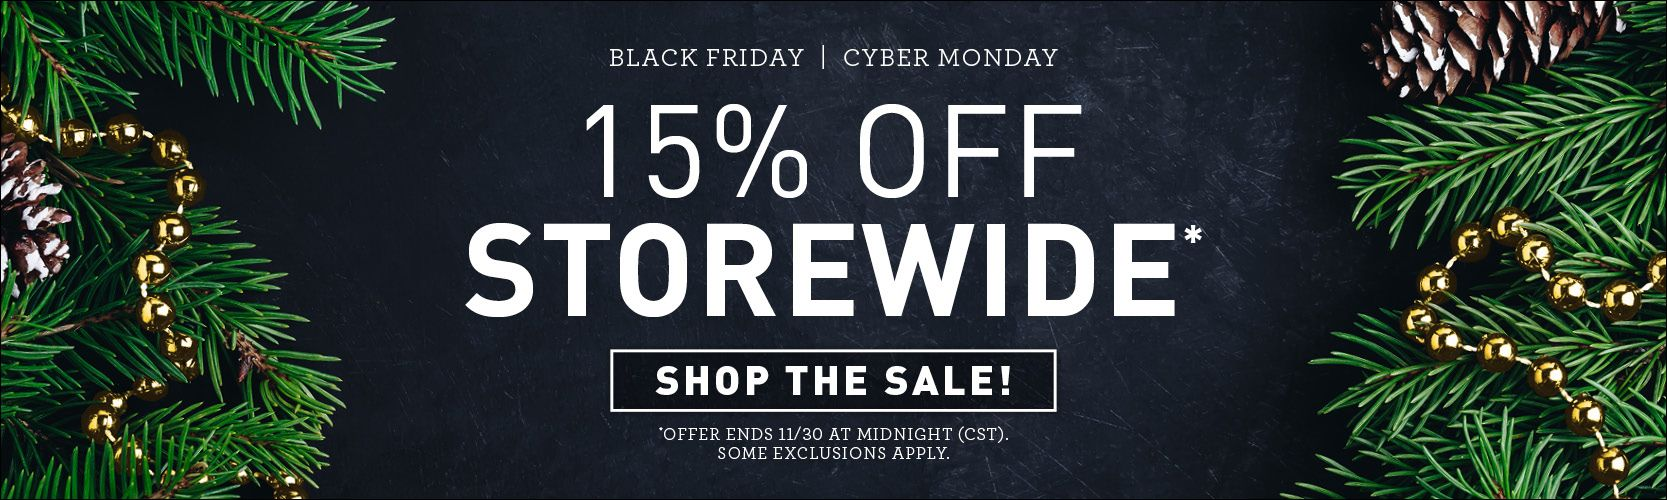 Black Friday, Cyber Monday. 15% off storewide* Shop this sale! *Offer ends 11/30 at midnight (CST). Some exclusions apply.